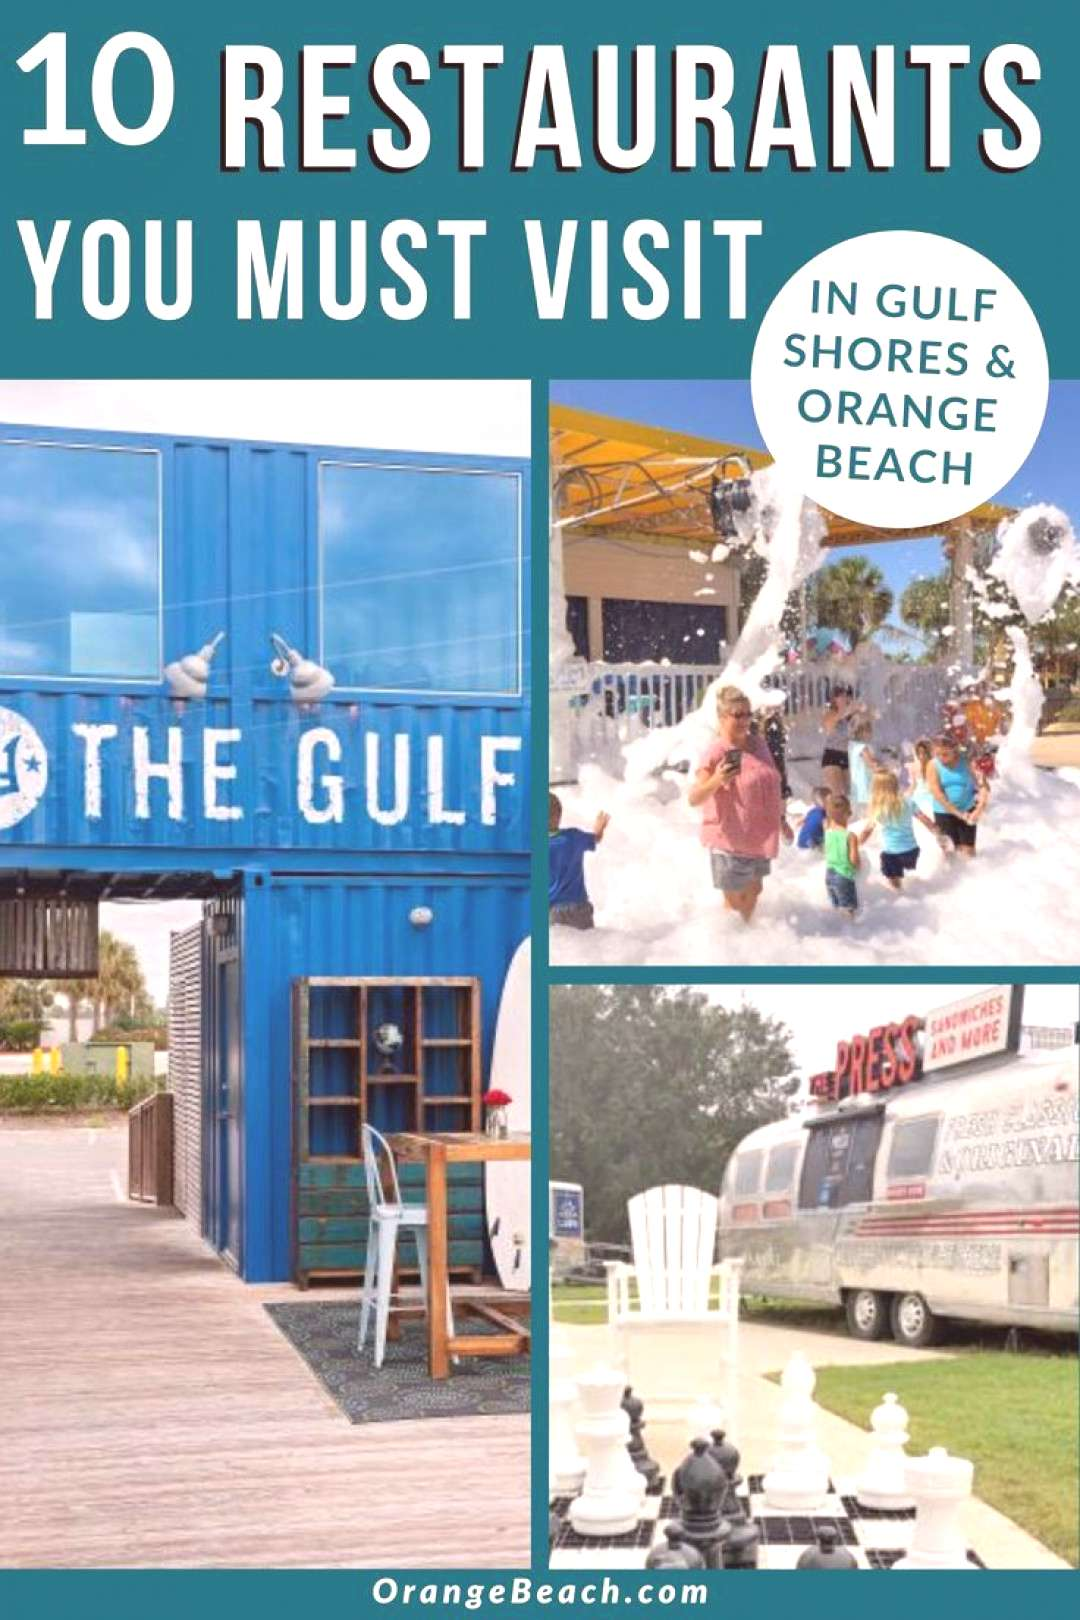 My Top 10 Must-Visit Restaurants and Attractions Looking for recommendations next time you visit Gu